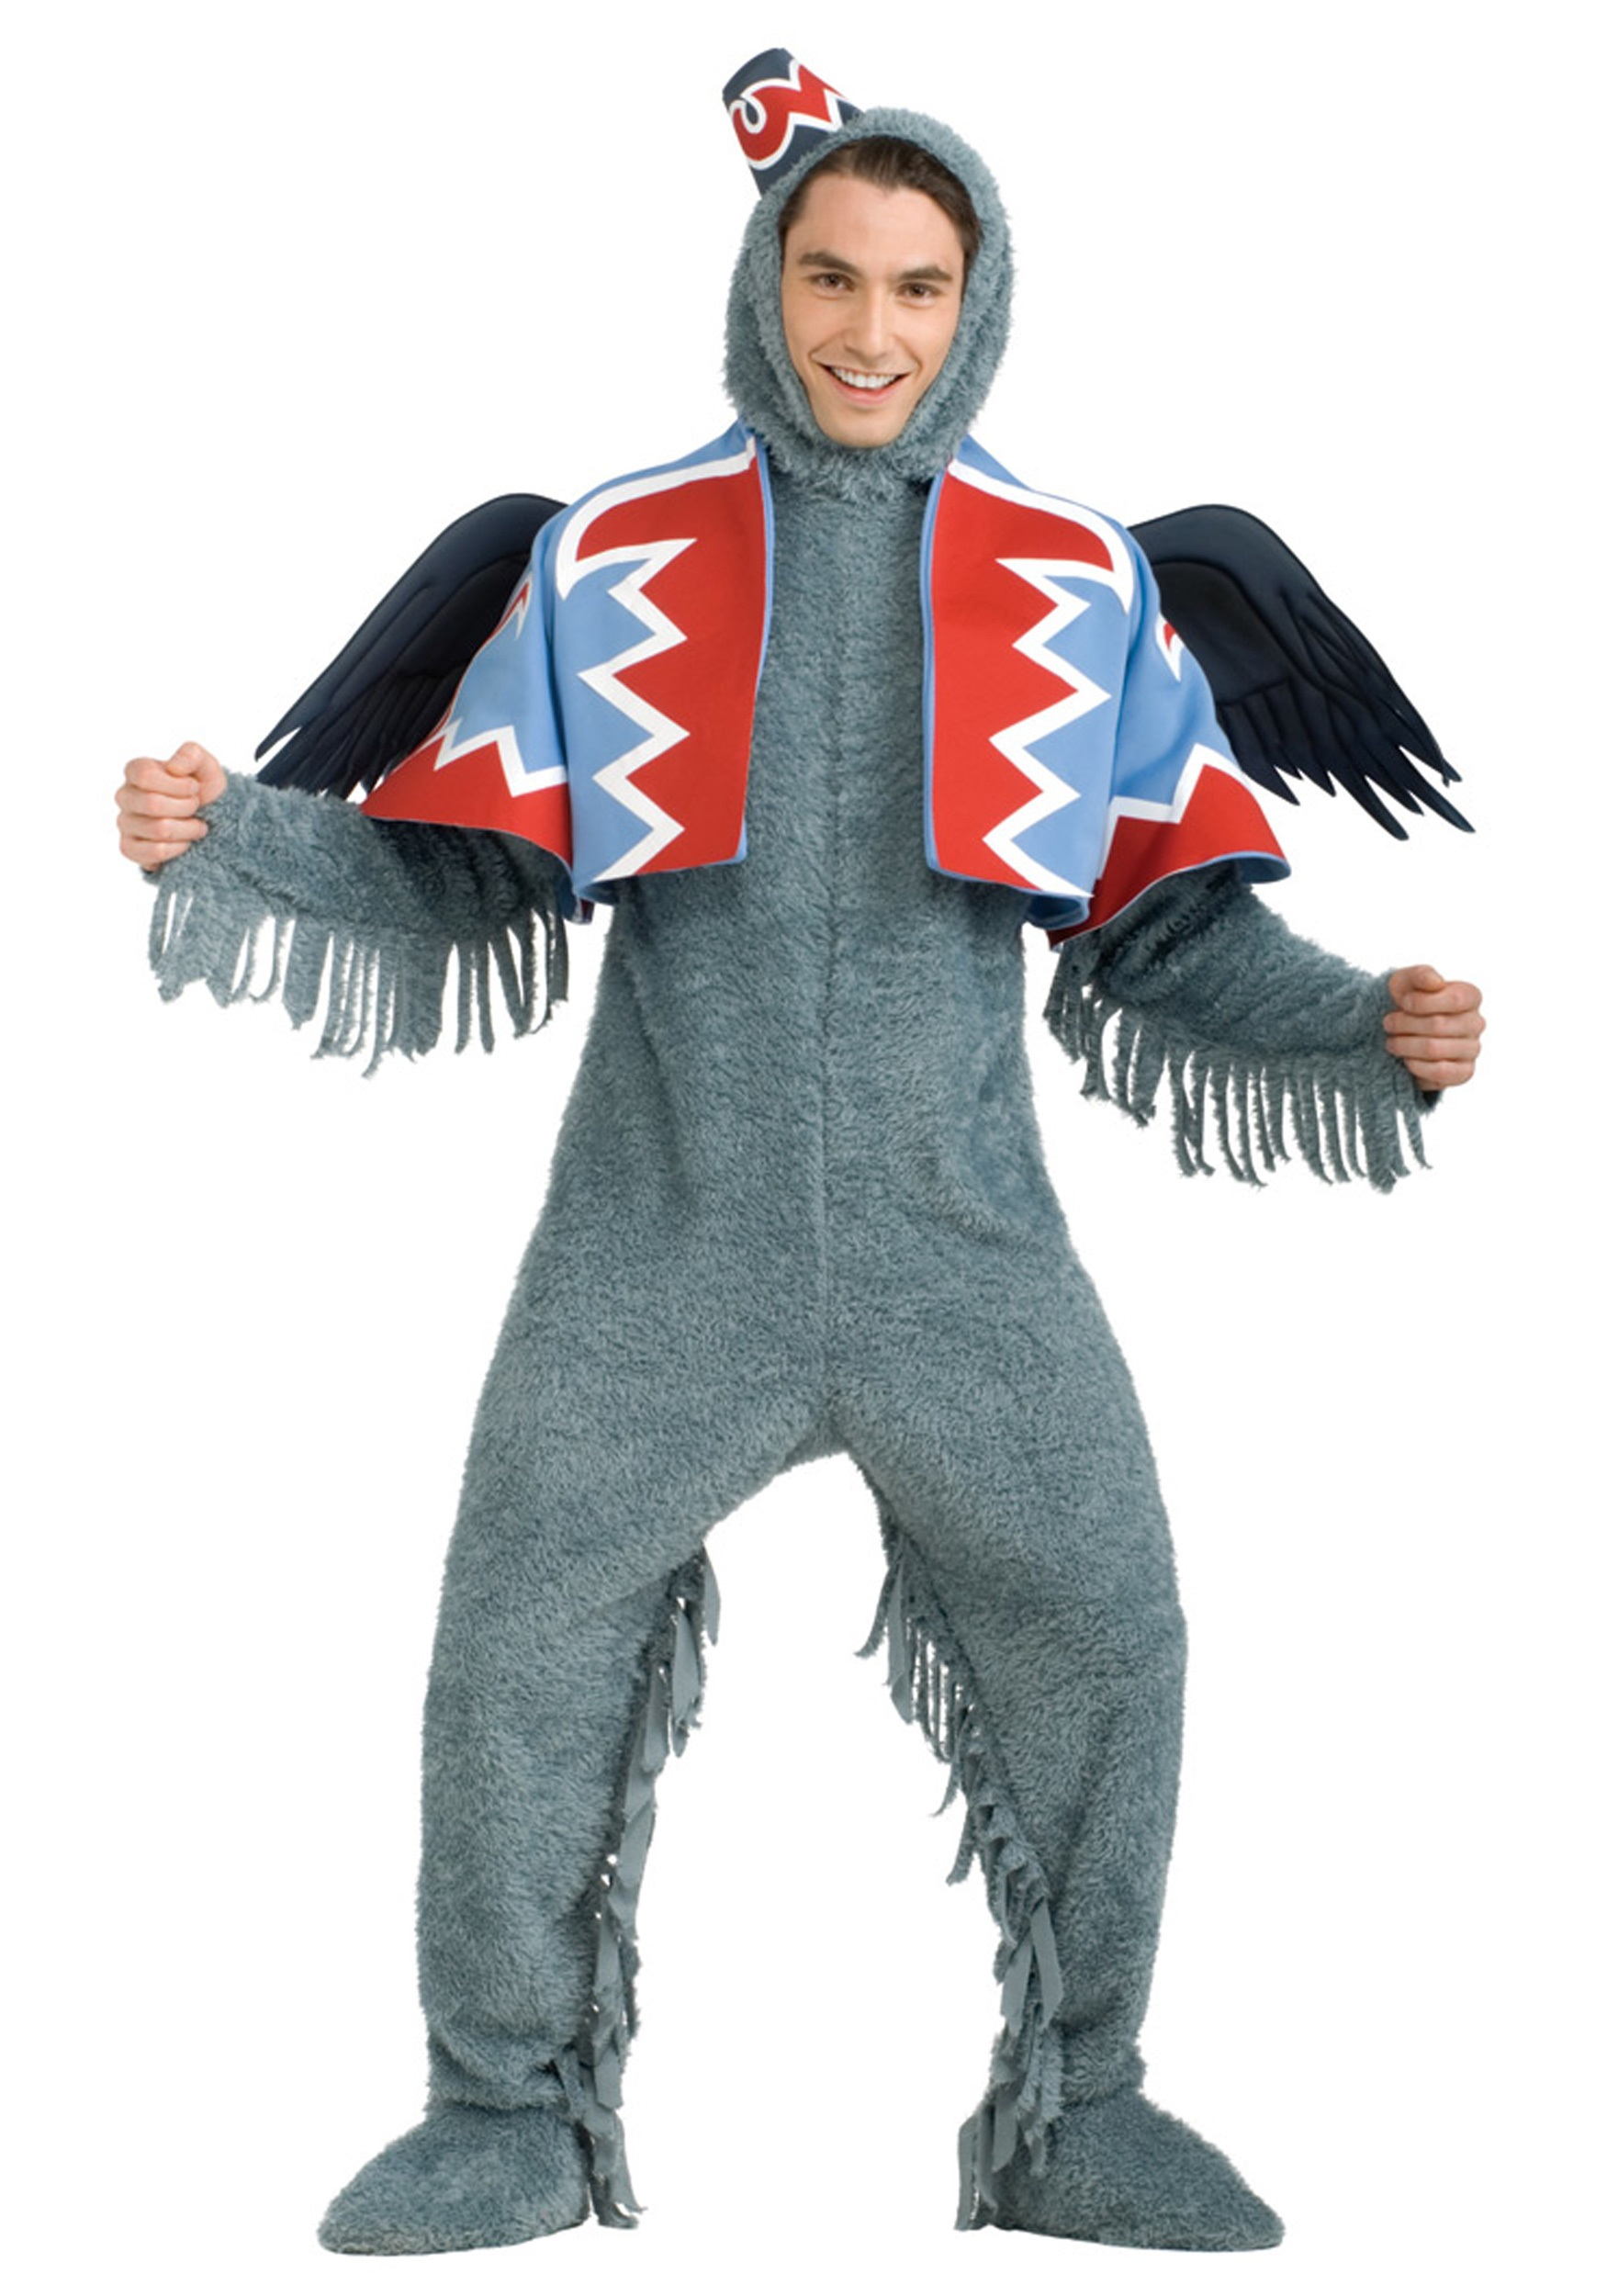 Officially Licensed Wizard of Oz Costumes